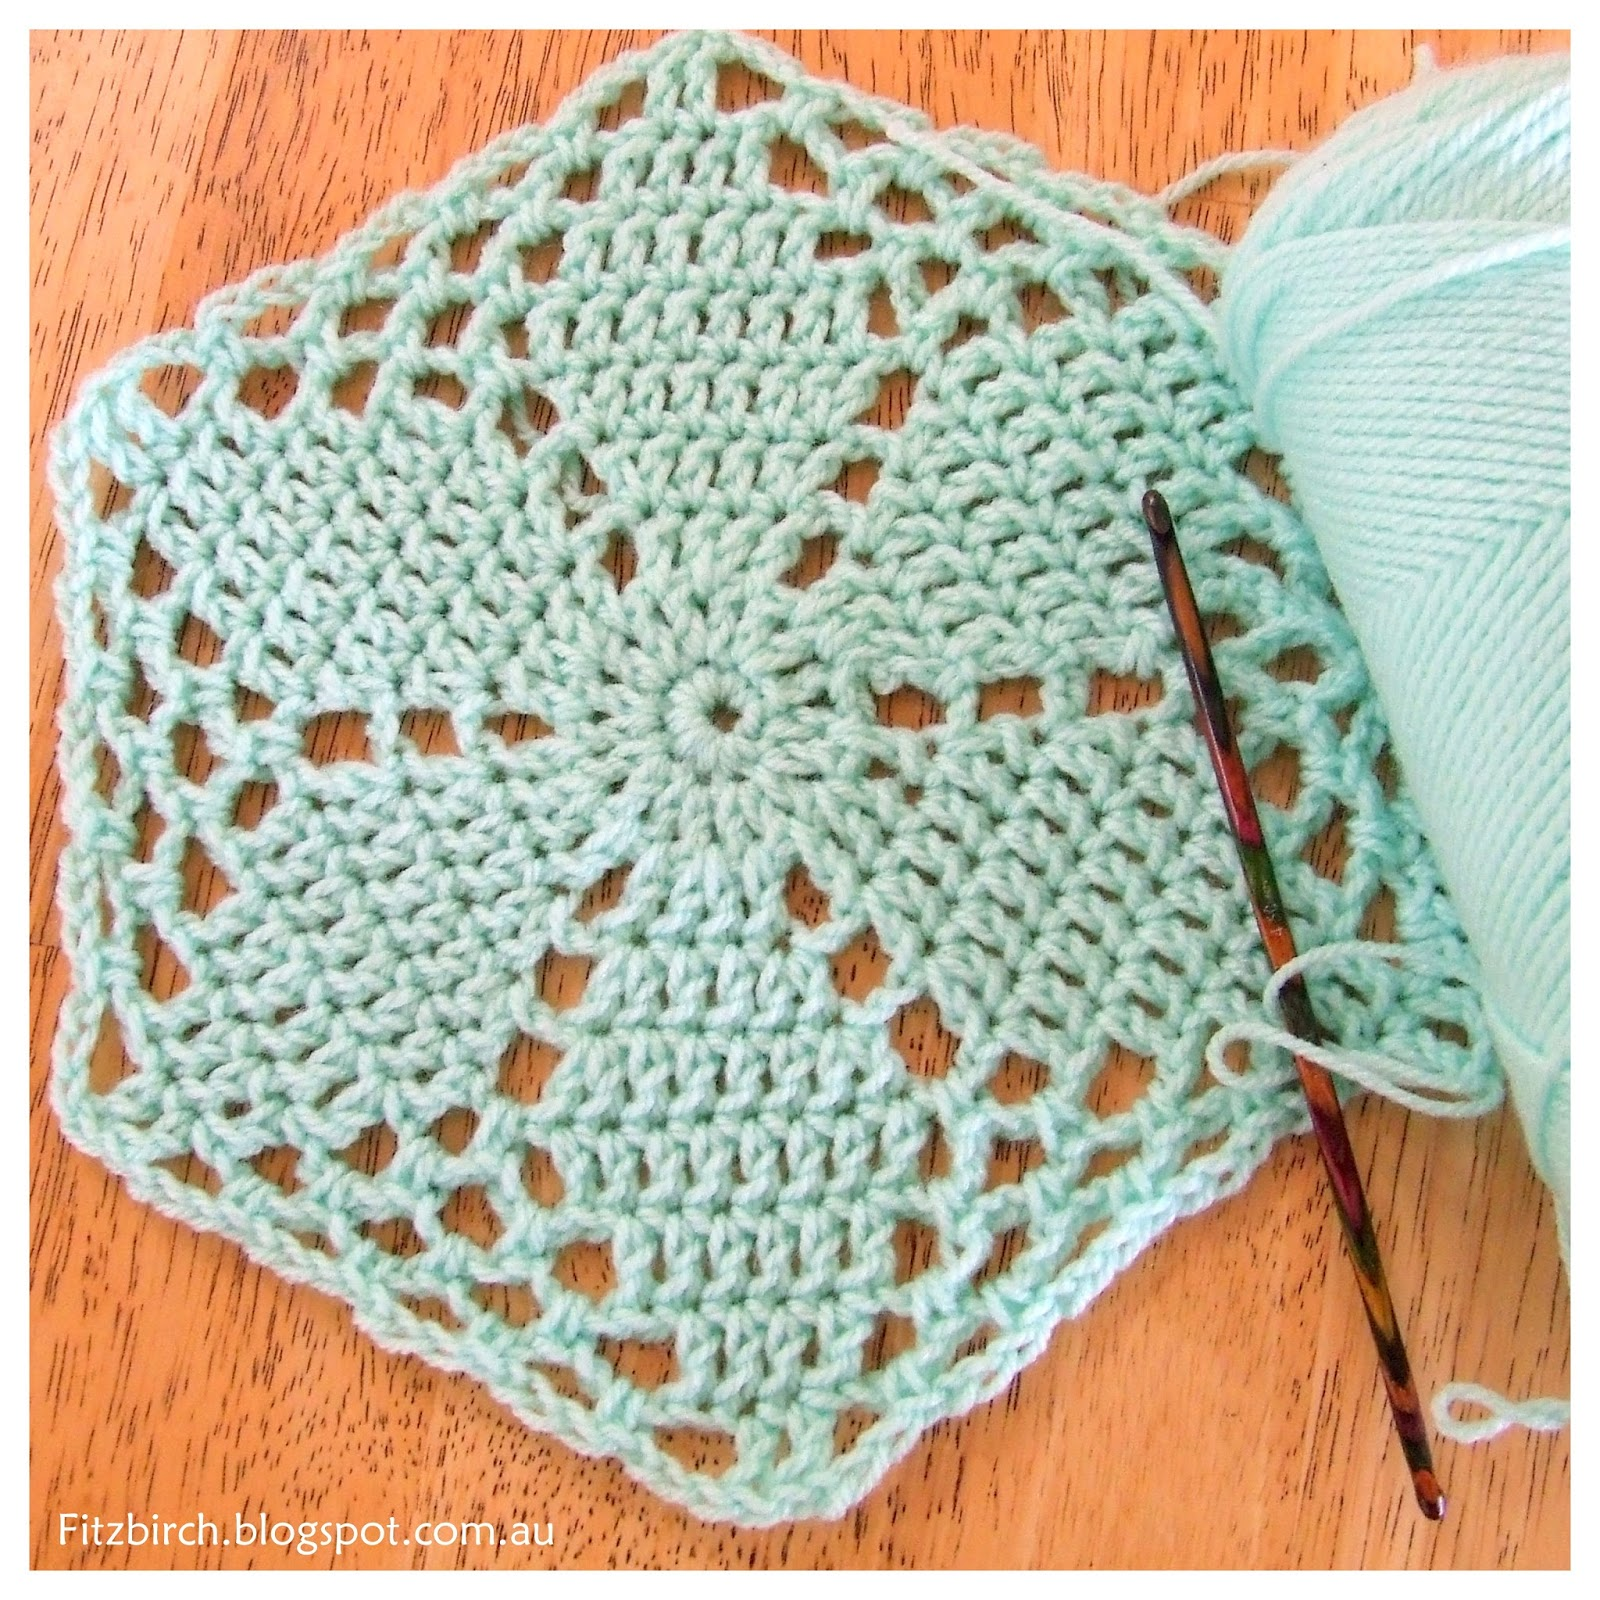 Fitzbirch Crafts Favourite Free Crochet Hexagon Patterns